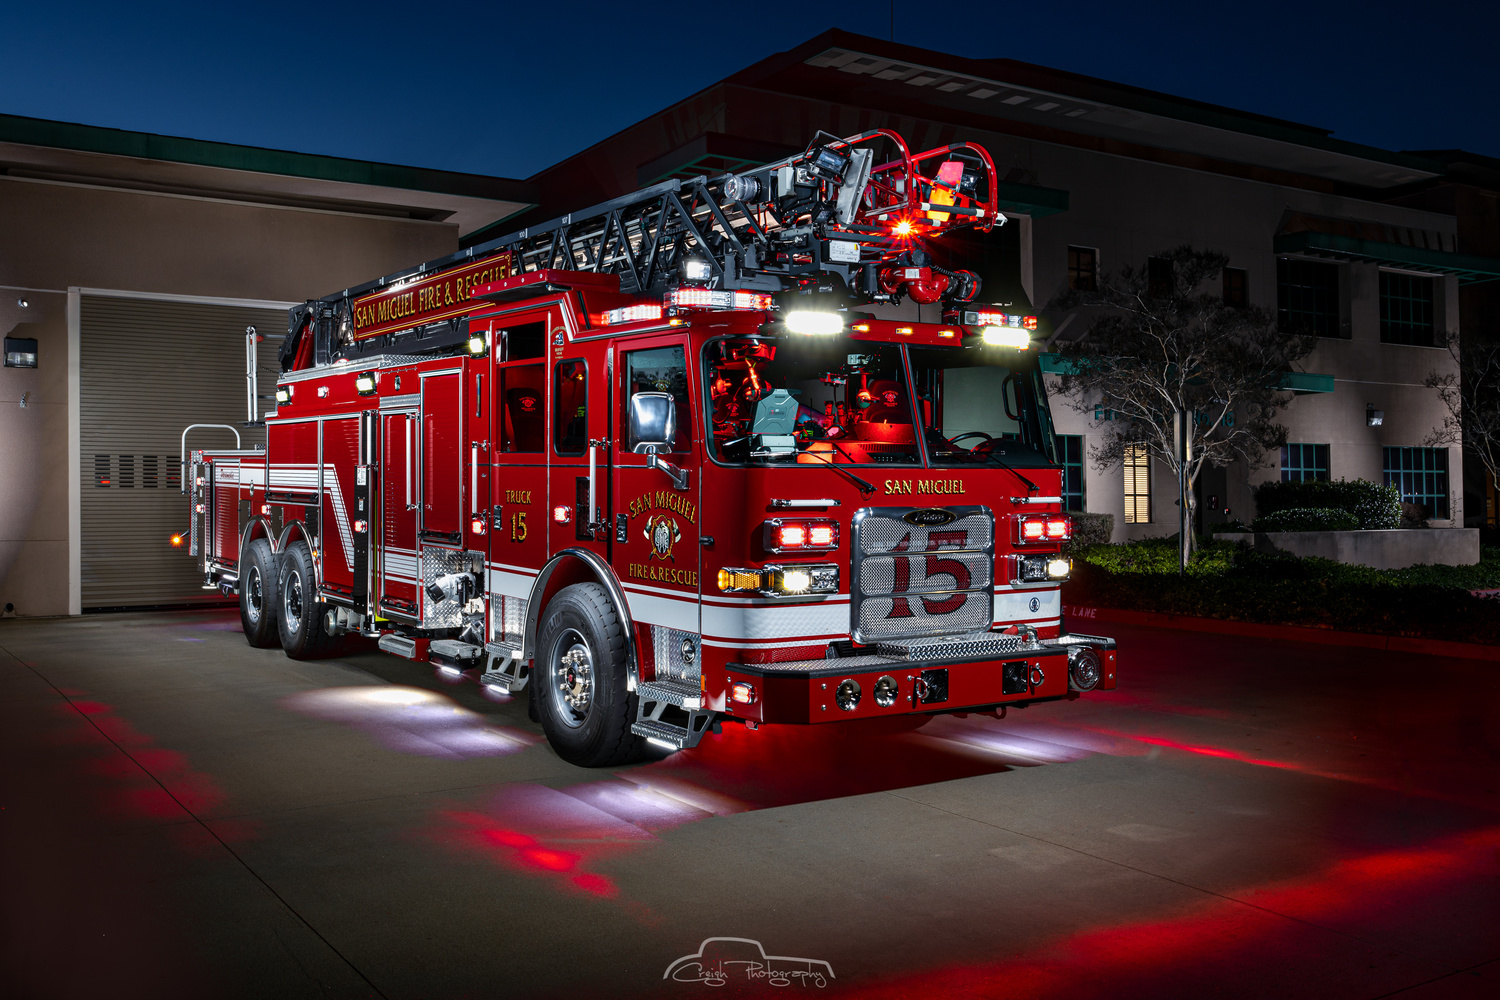 San Miguel Fire Truck 15 by Creigh McIntyre